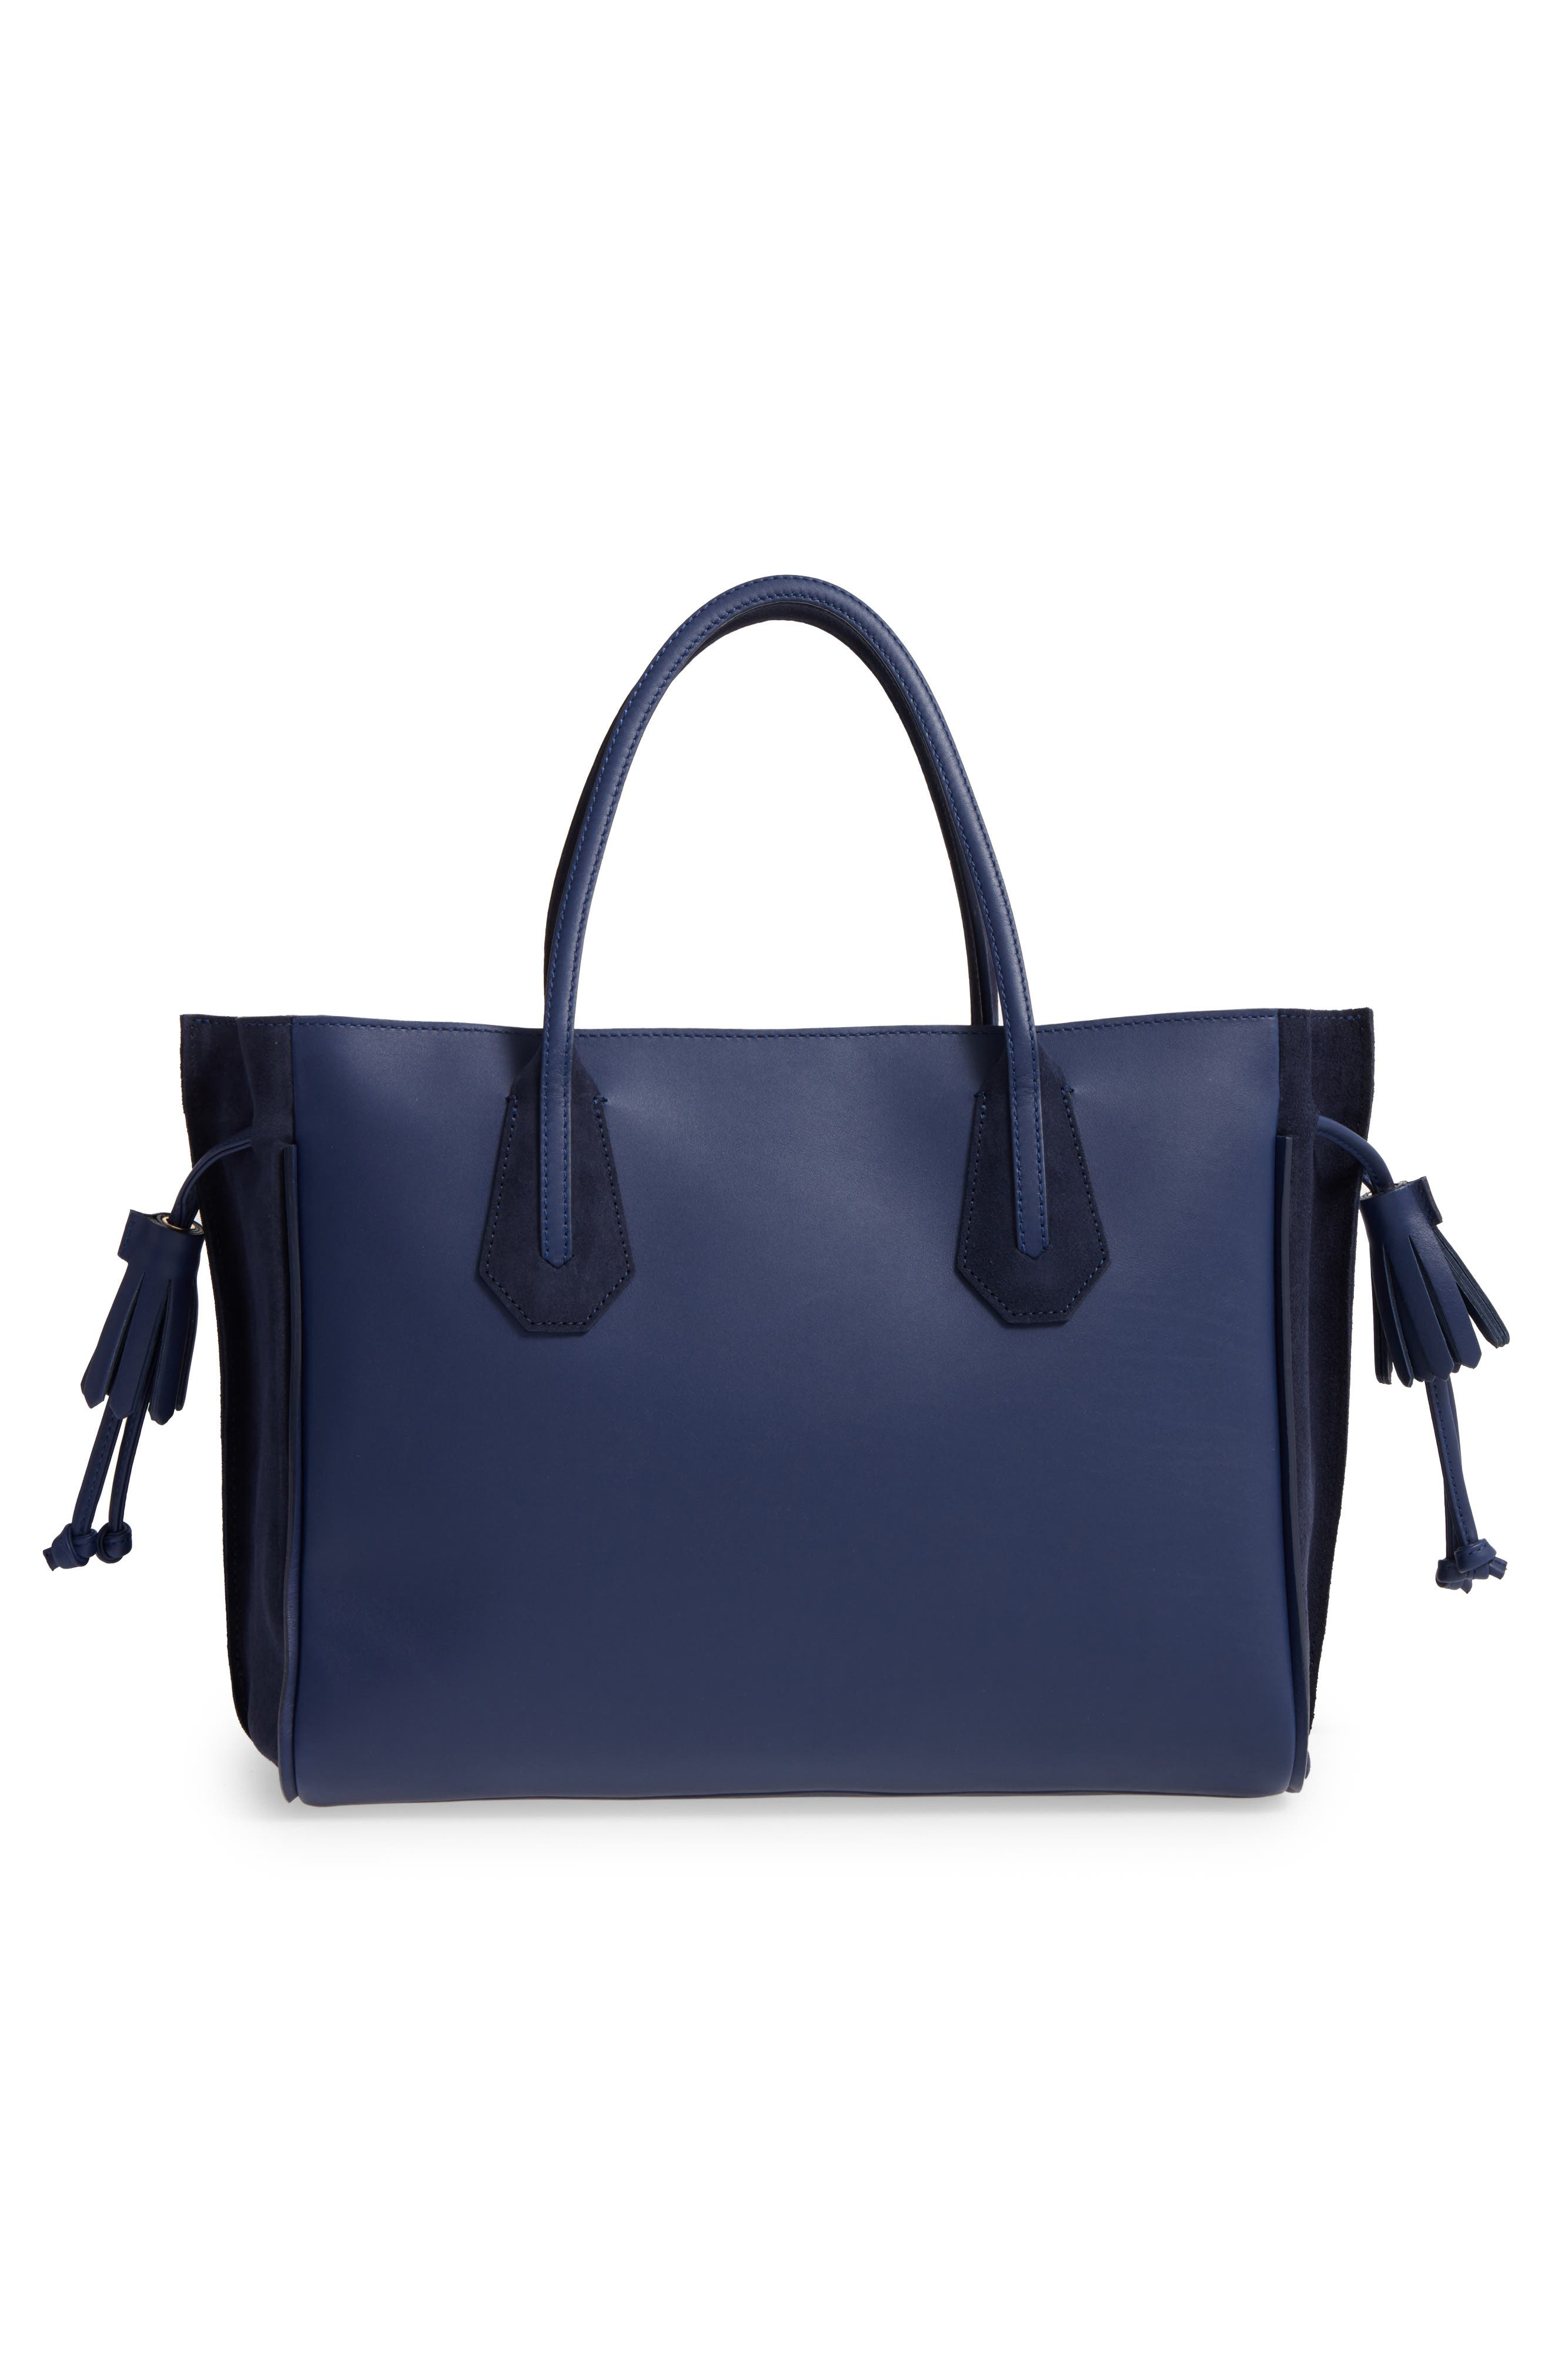 'Medium Penelope Fantasie' Leather Tote,                             Alternate thumbnail 2, color,                             Blue